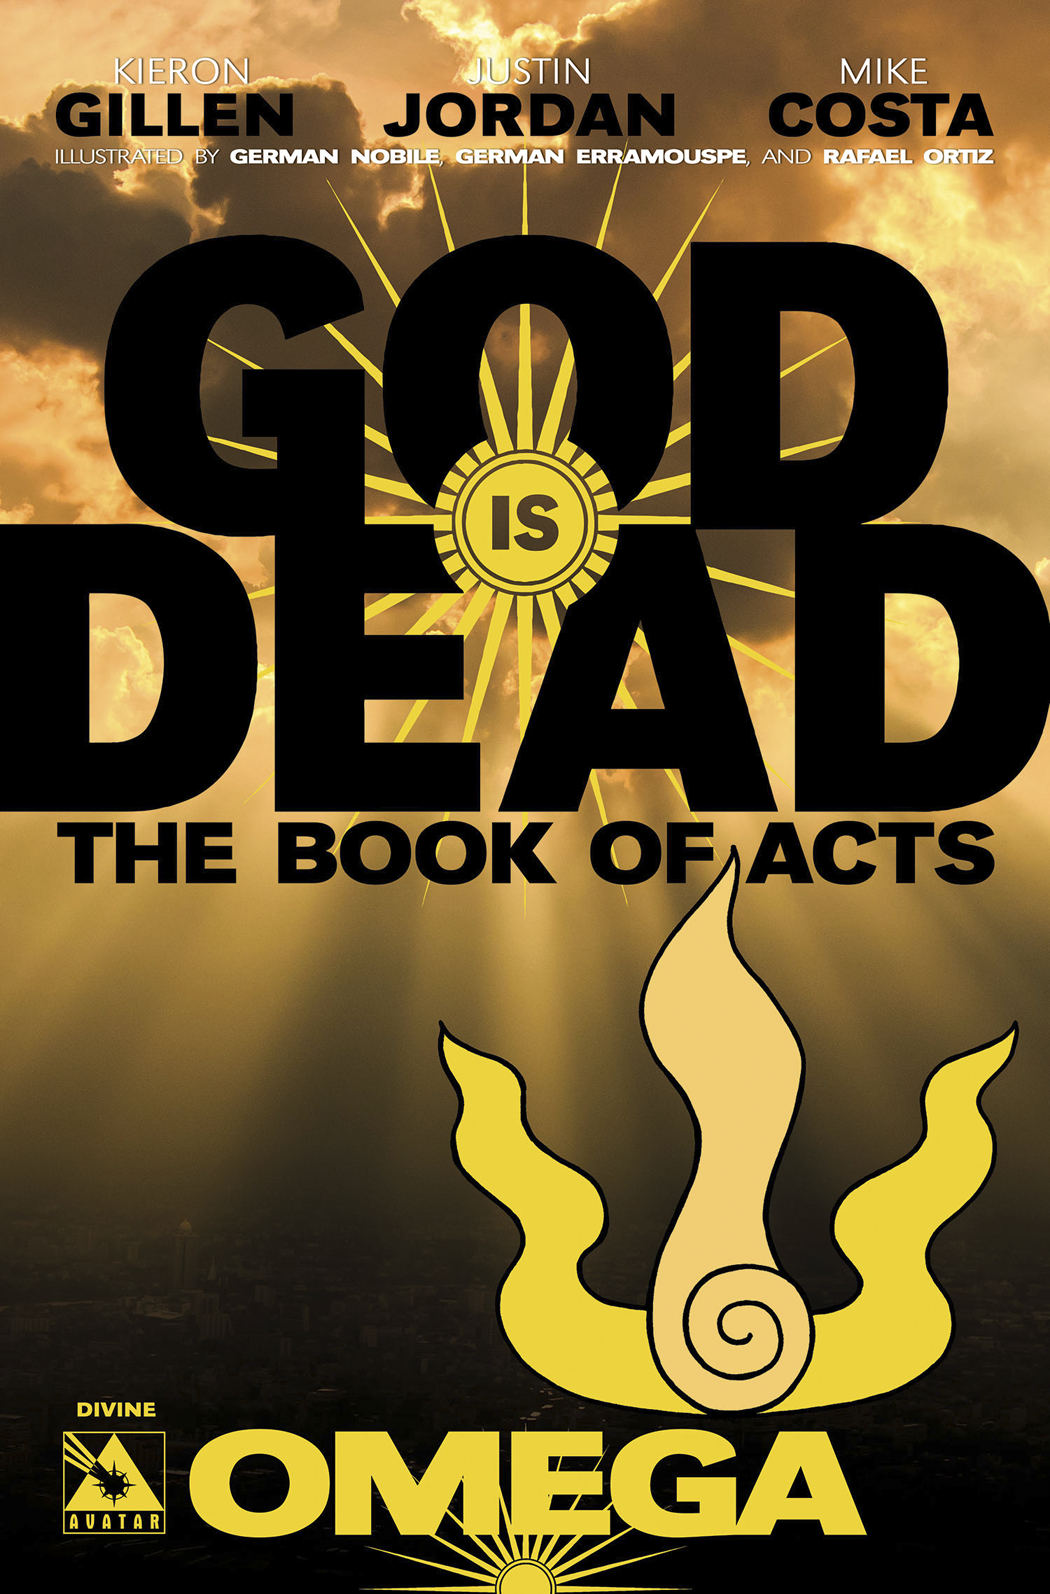 GOD IS DEAD BOOK OF ACTS OMEGA DIVINE RETAILER ORD INCV